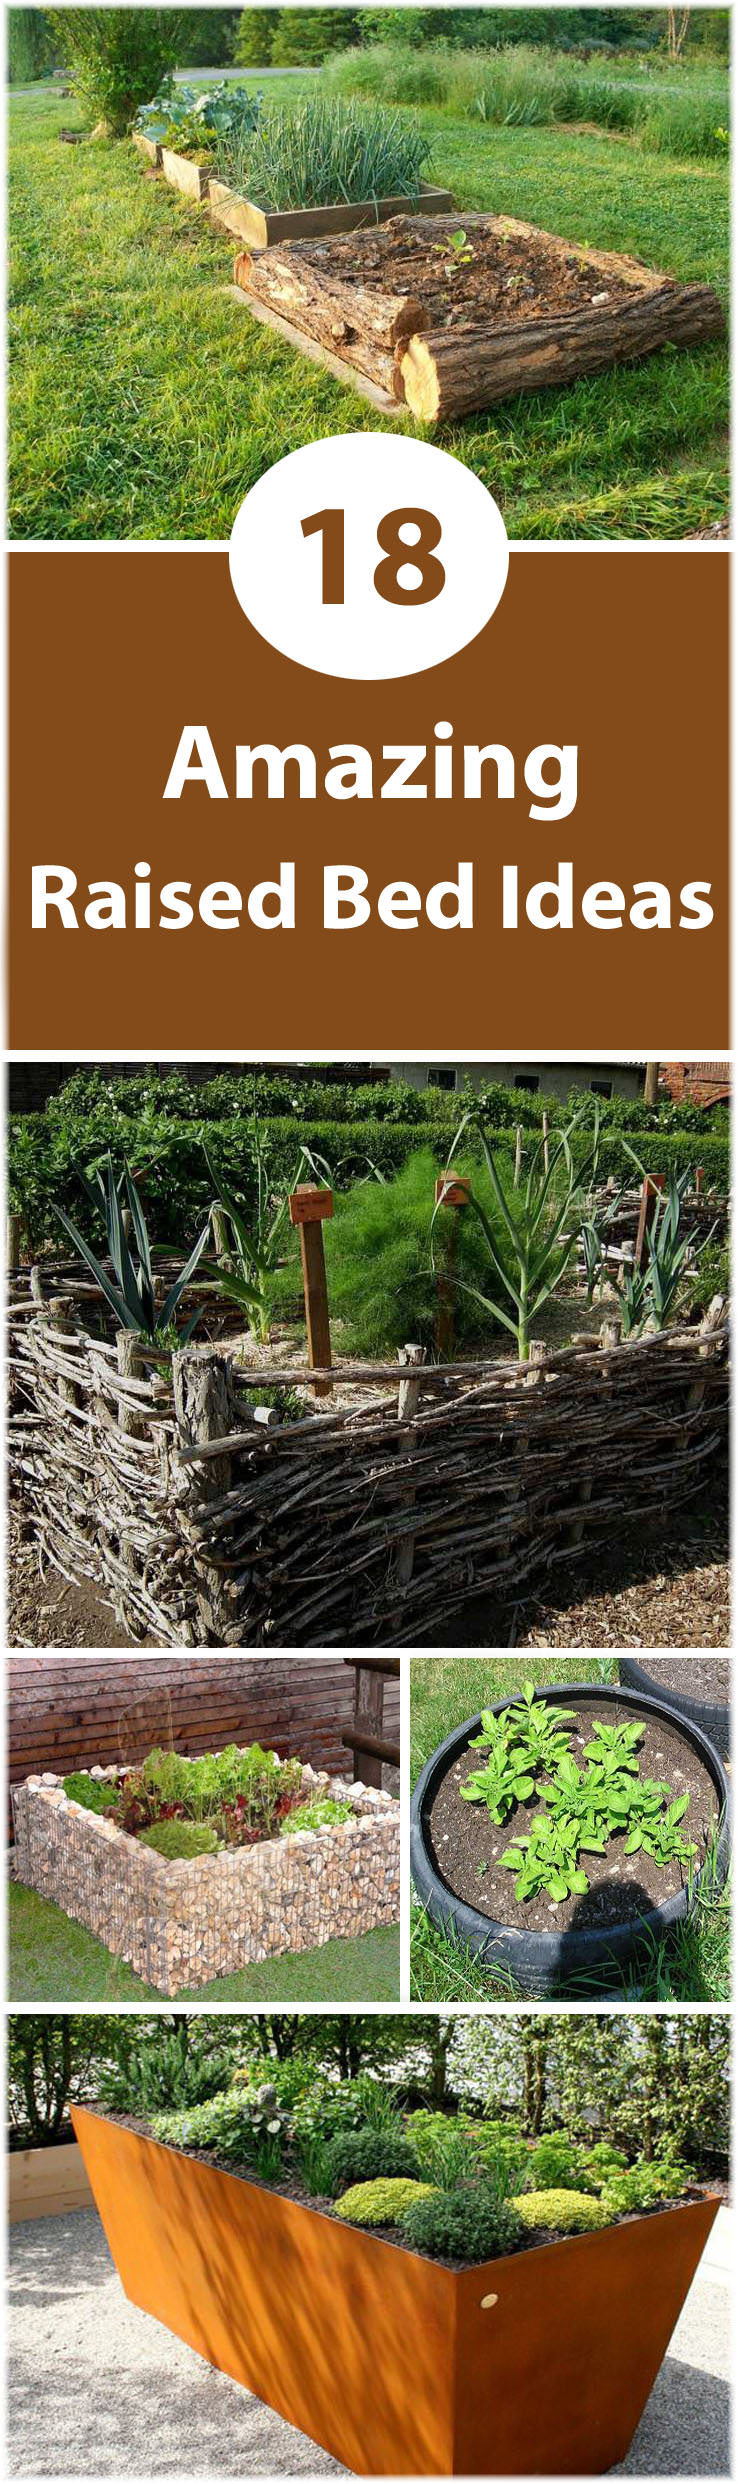 18 Great Raised Bed Ideas | Raised Bed Gardening | Balcony ... on raised flower beds, raised succulent garden, raised water garden, raised stone garden, raised tree garden, raised butterfly garden, raised shade garden, raised garden plants, raised berry garden, raised cactus garden, raised garden bed, raised container garden, raised rose garden, raised fire pit, raised rock garden, raised iris garden, raised herb garden, raised cottage garden, raised garden design, raised vegetable garden,